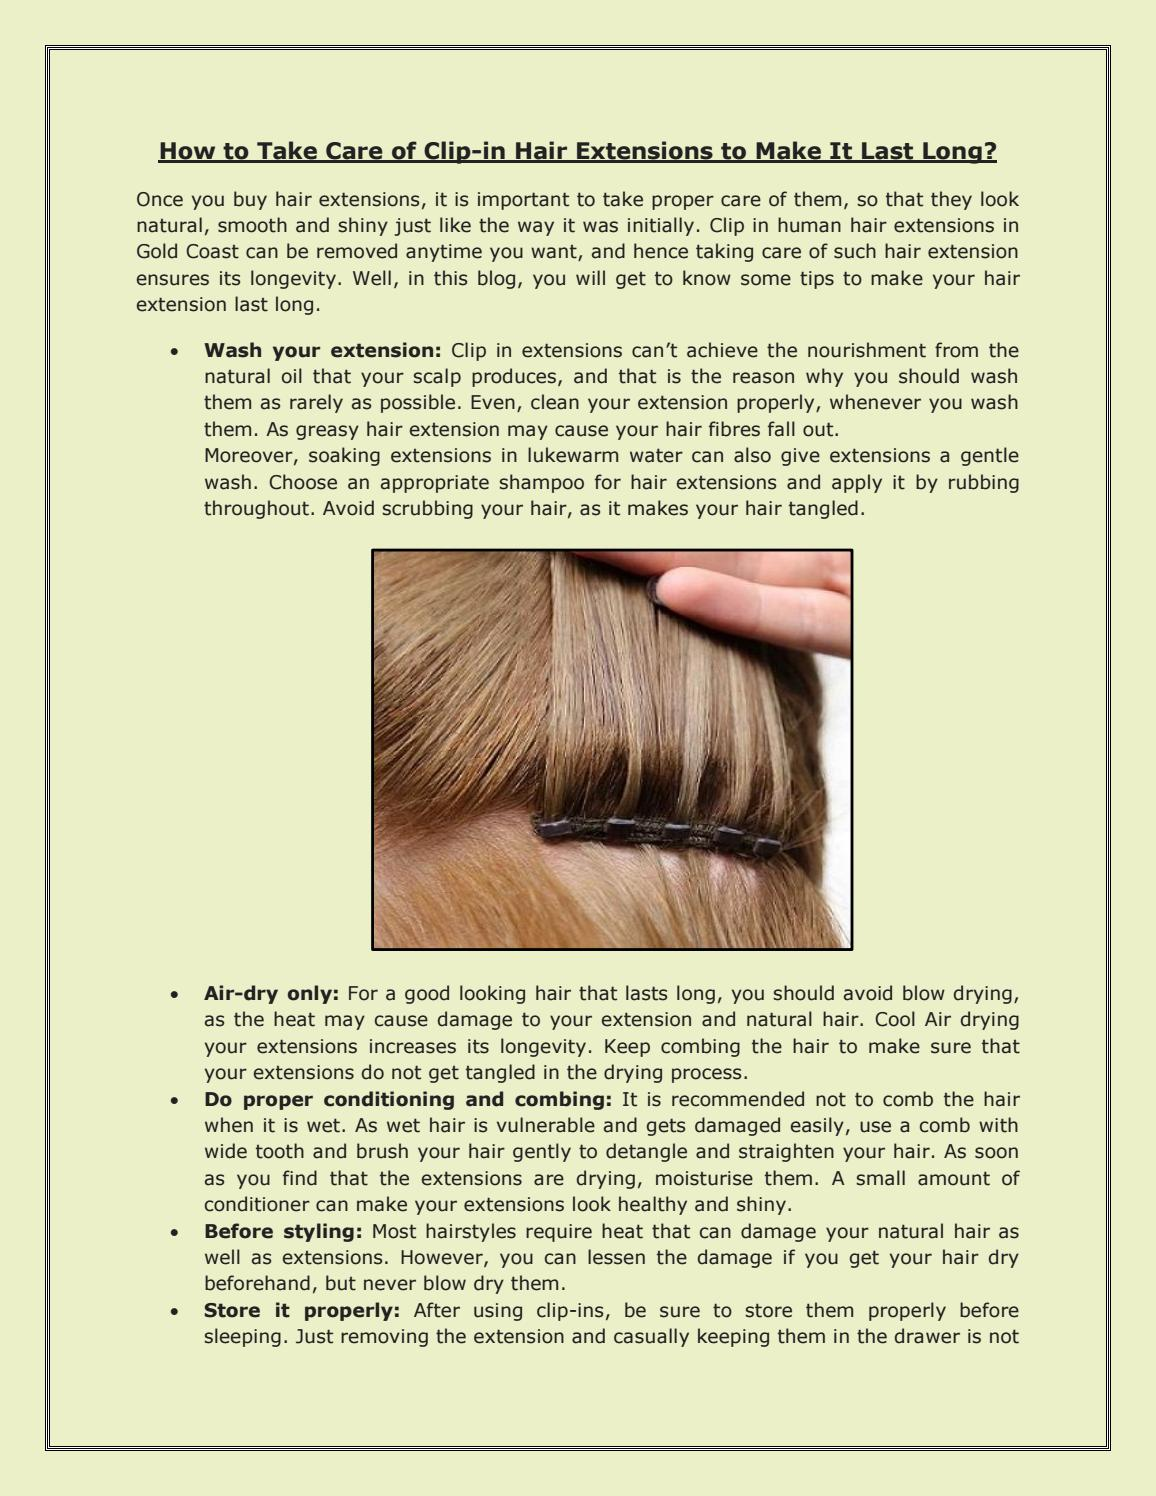 How To Take Care Of Clip In Hair Extensions To Make It Last Long By